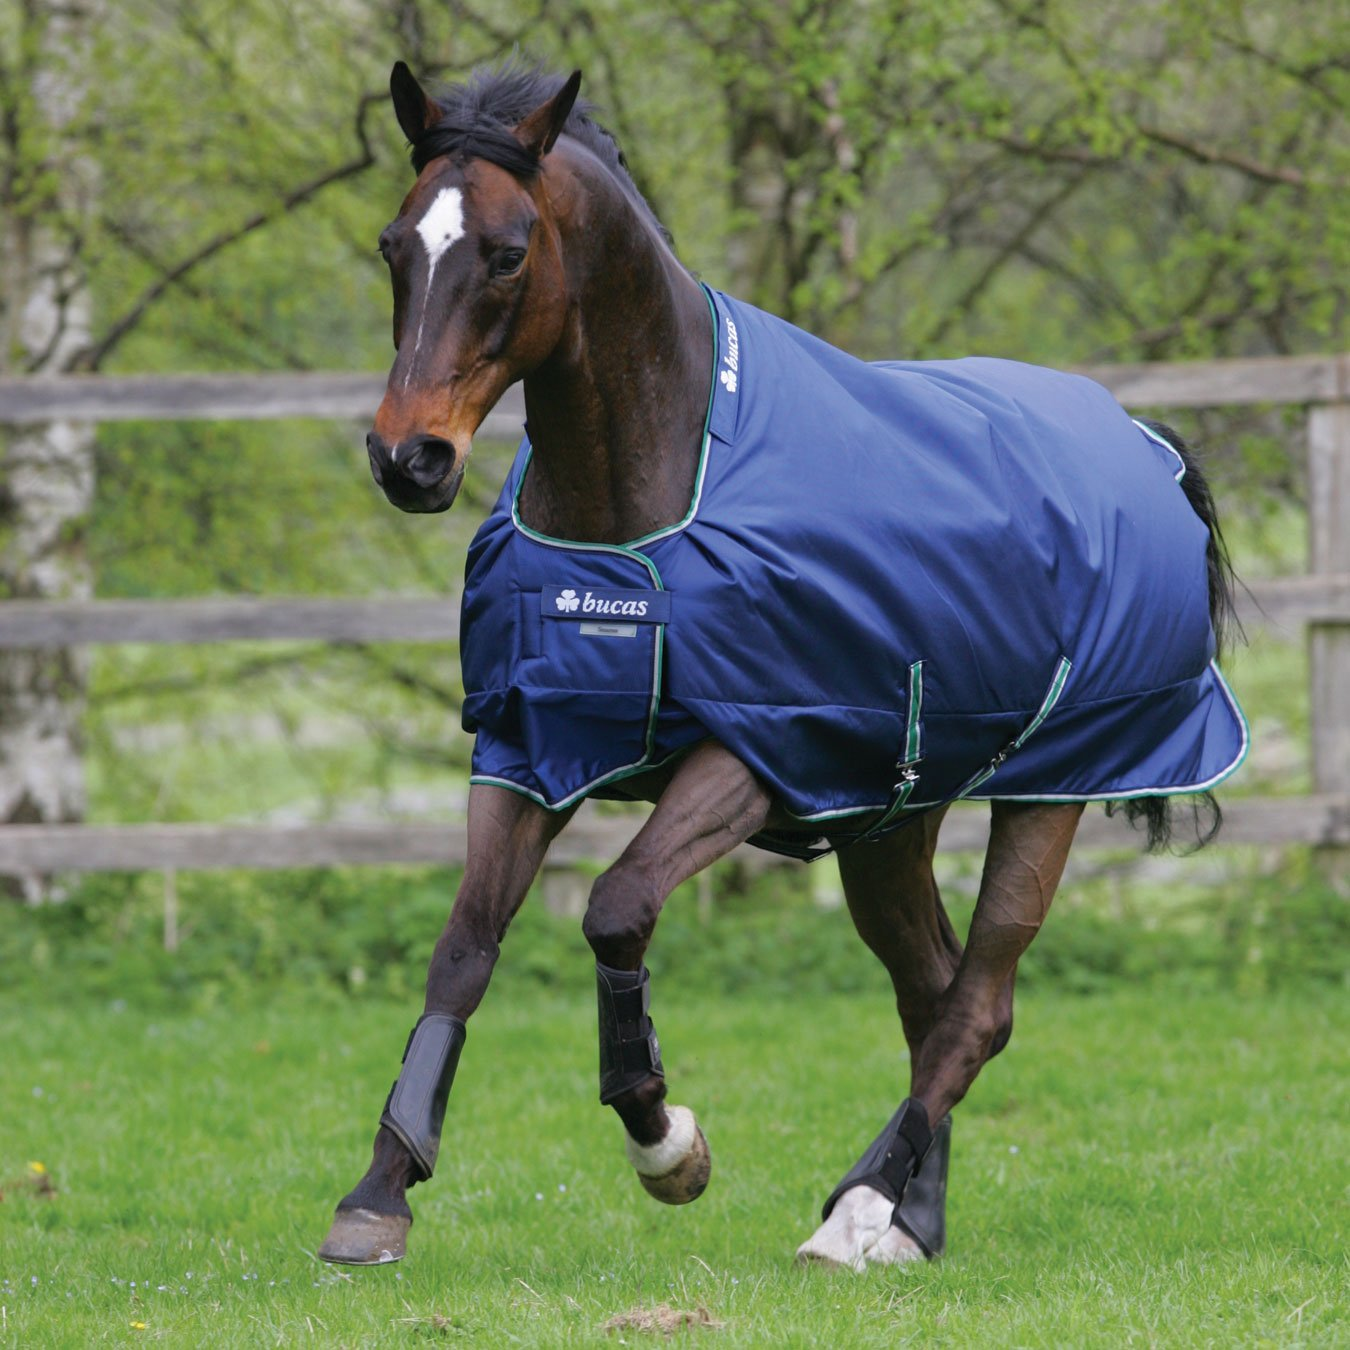 Bucas Smartex Turnout Rain Big Neck 0g - blue